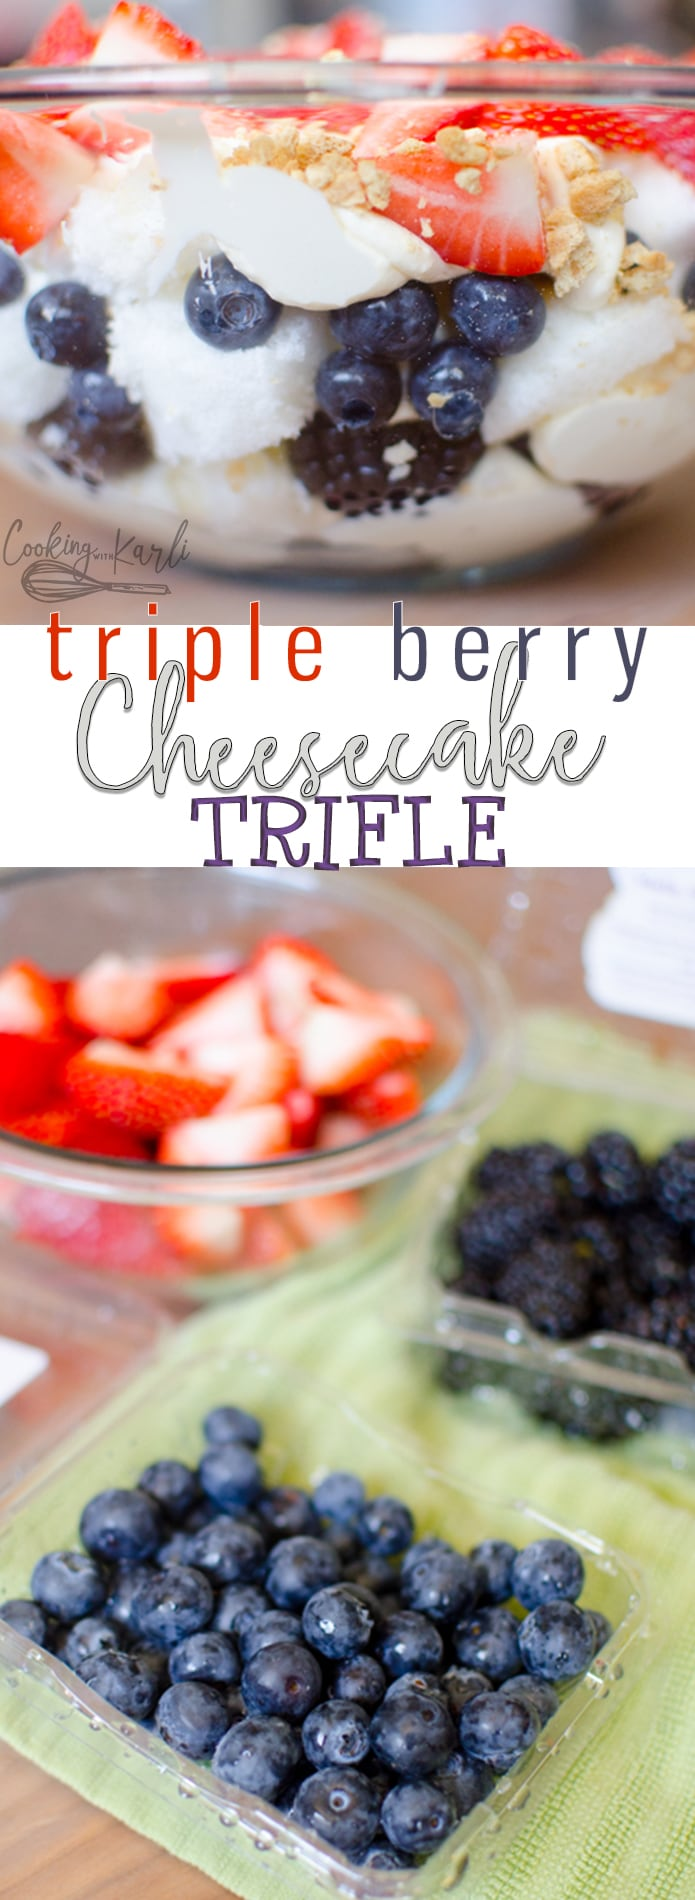 Berry Cheesecake Trifle is a fast and easy no bake dessert perfect for Memorial Day, the 4th of July, or just summer in general! Angel Food Cake, blackberries, blueberries and strawberries are brought together with a creamy cheesecake filling. This dessert is perfect for a crowd!! |Cooking with Karli| #summer #trifle #berry #tripleberry #strawberry #blackberry #blueberry #cheesecake #fourthofjuly #4th #patriotic